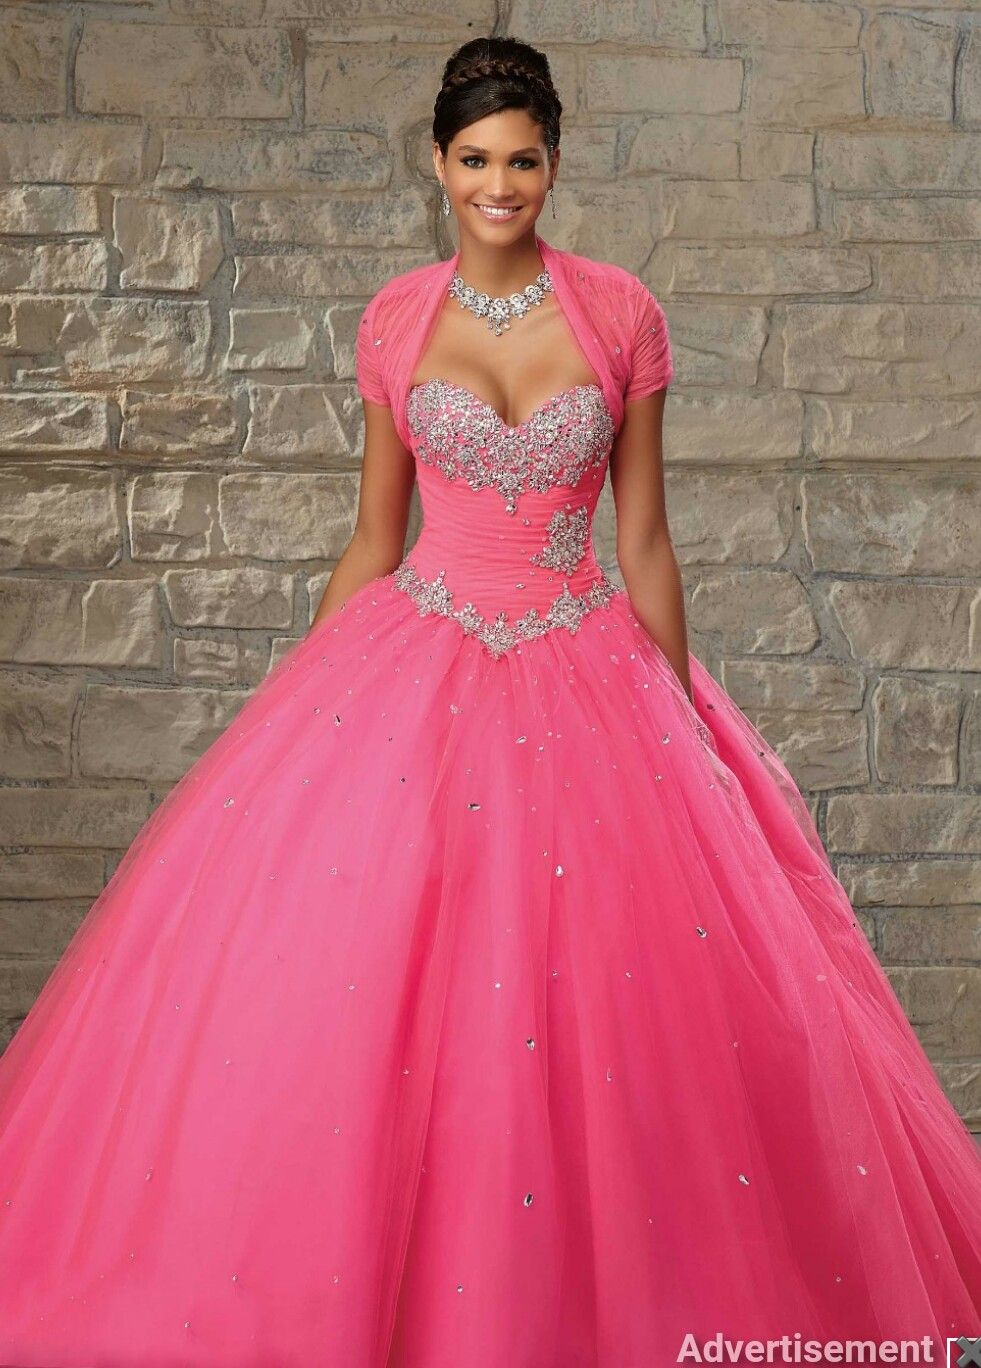 Pin de Sherry Cassell en dresses I love | Pinterest